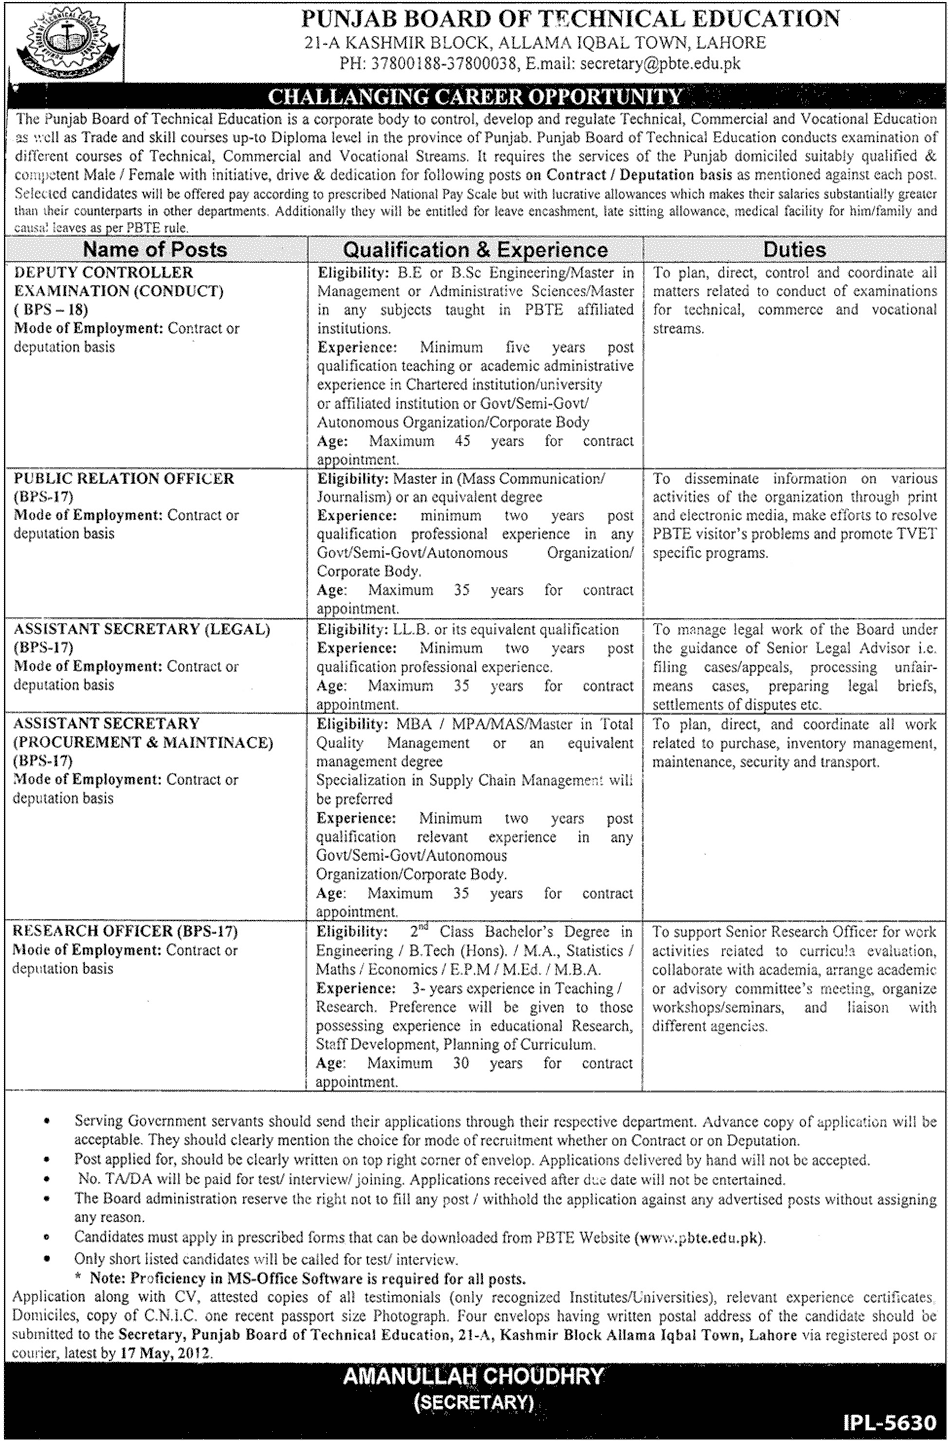 punjab board of technical education lahore jobs 2012 Punjab Board of Technical Education Lahore Jobs 2012